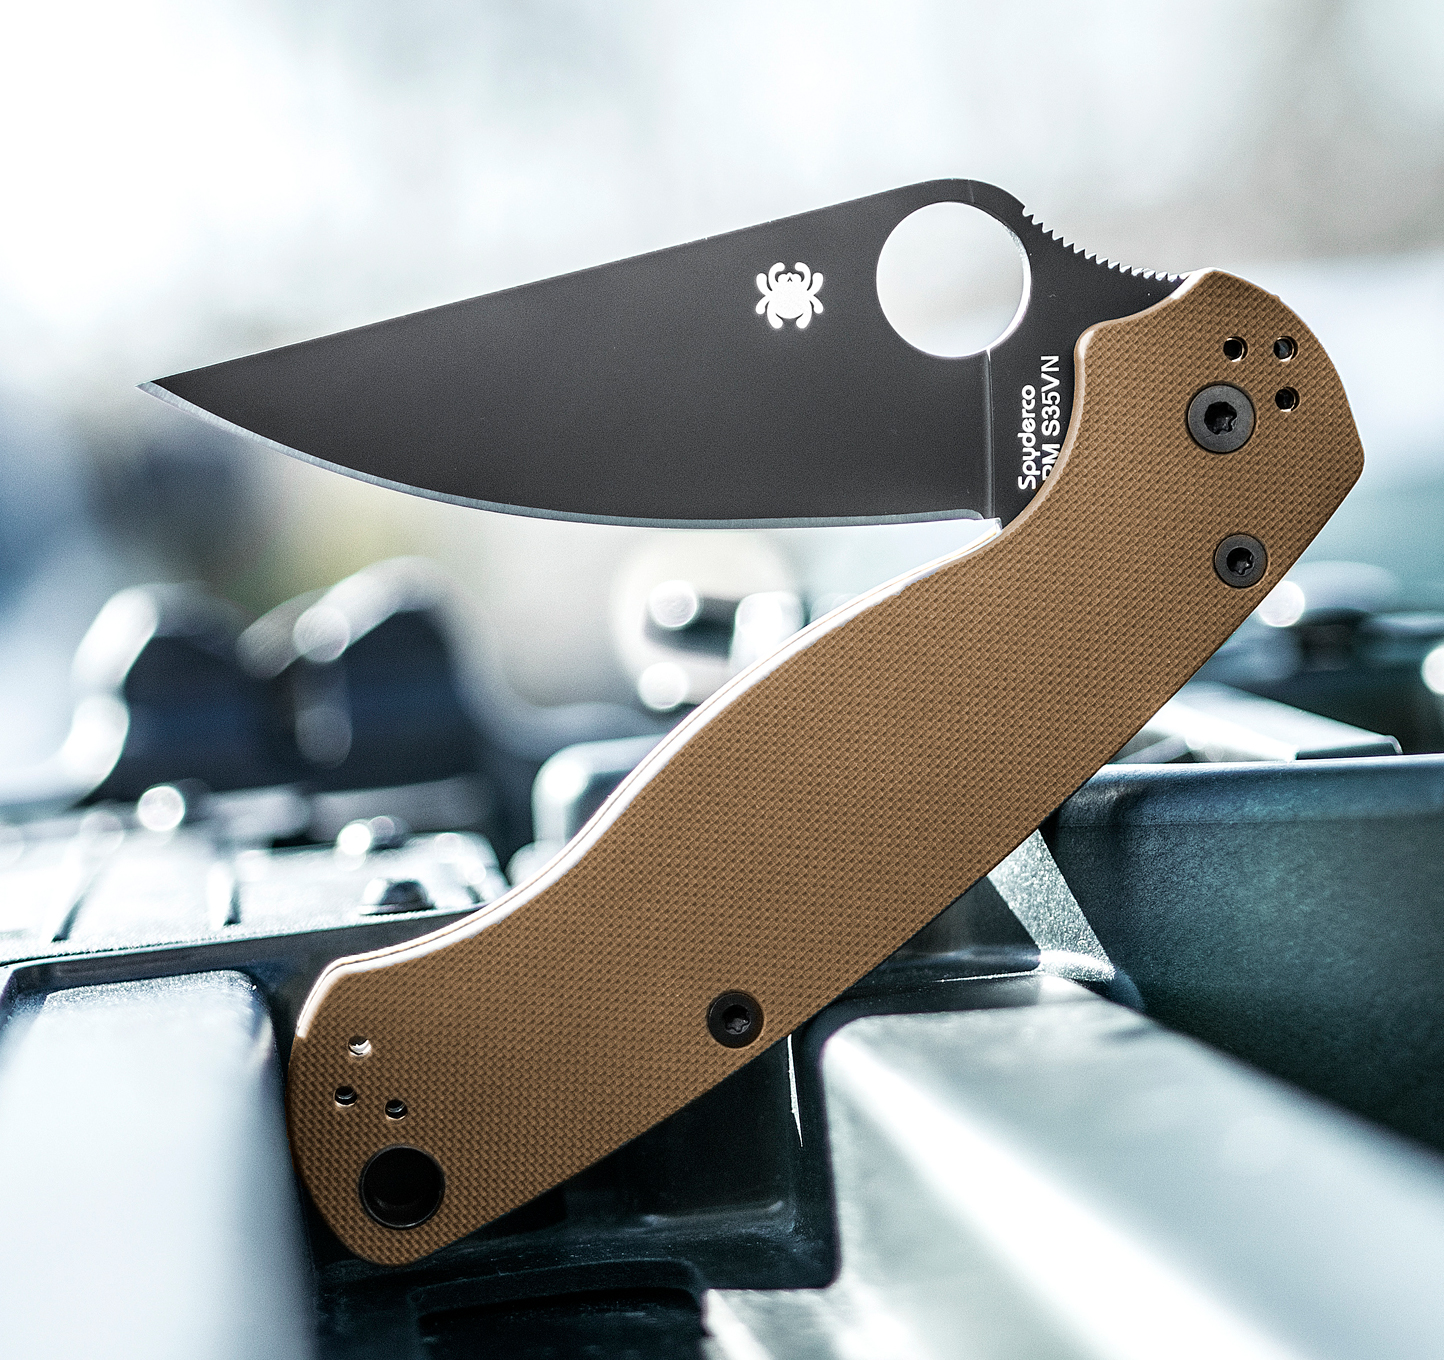 Spyderco Paramilitary 2 Folding Knife 3-7/16